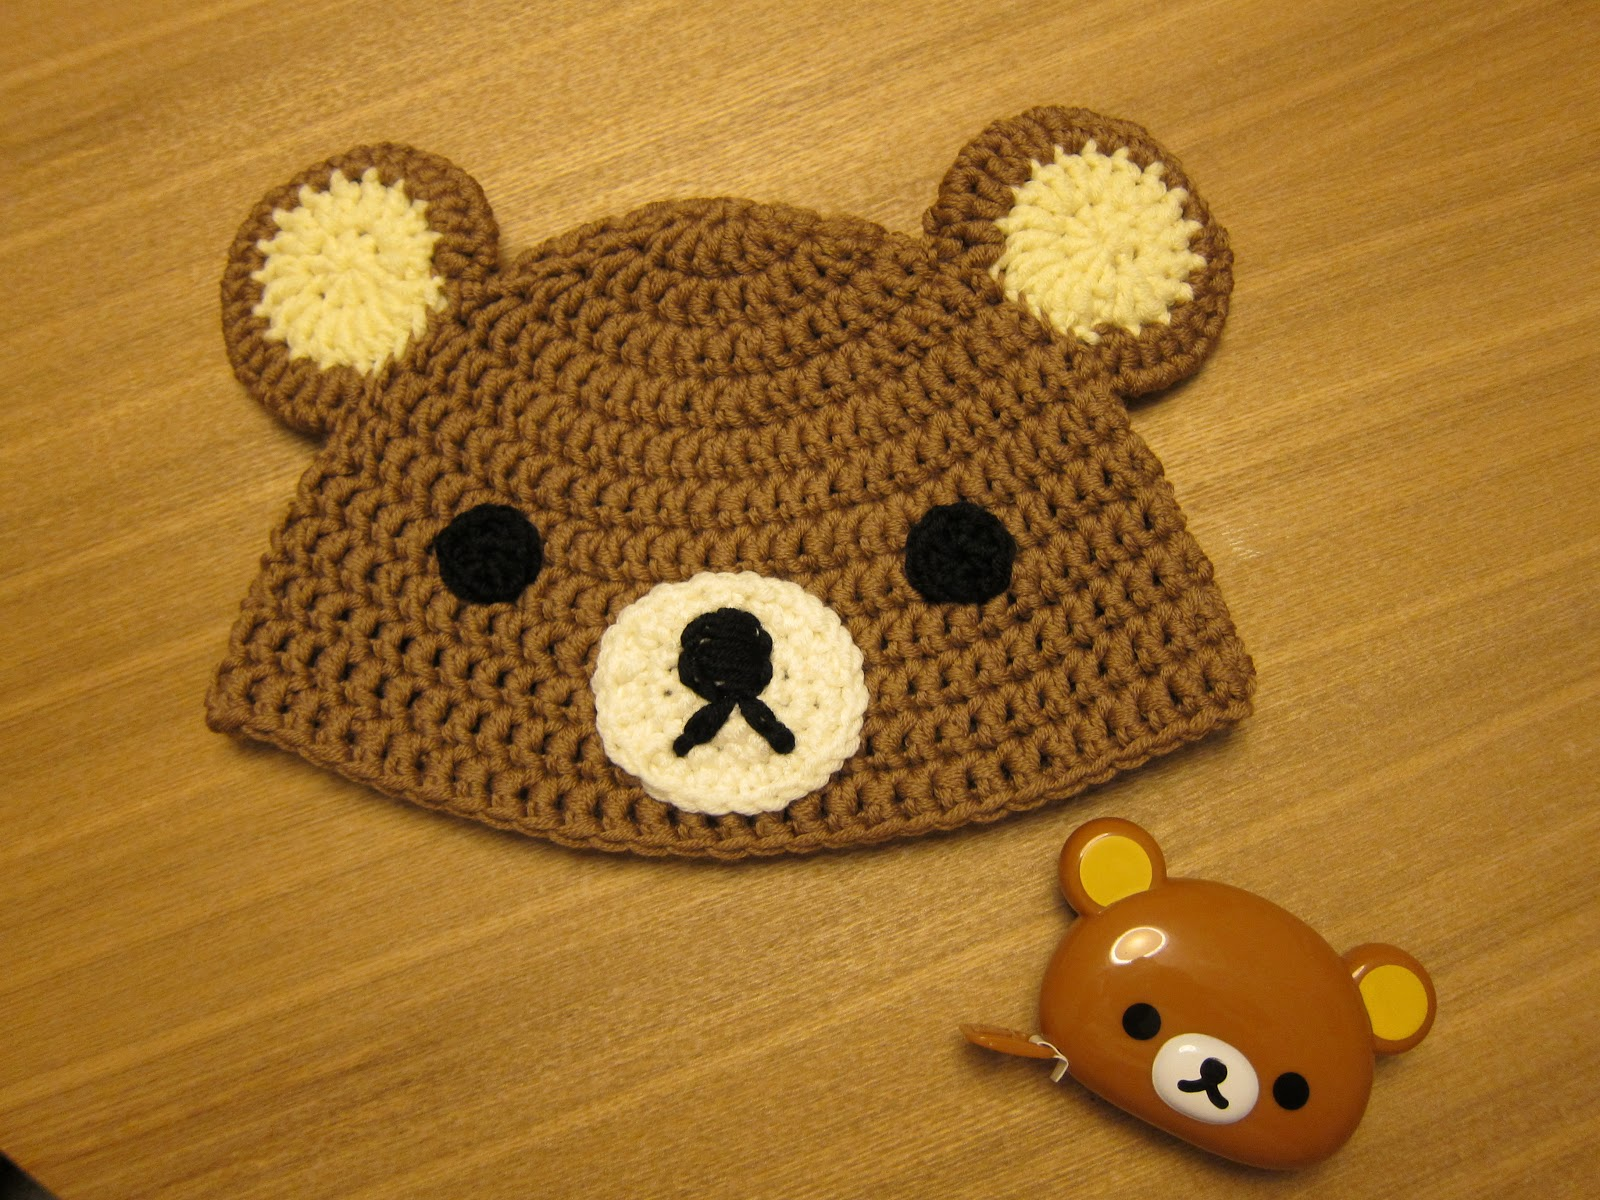 Crocheting Rilakkuma hat | Follow me and see if I success in the ...